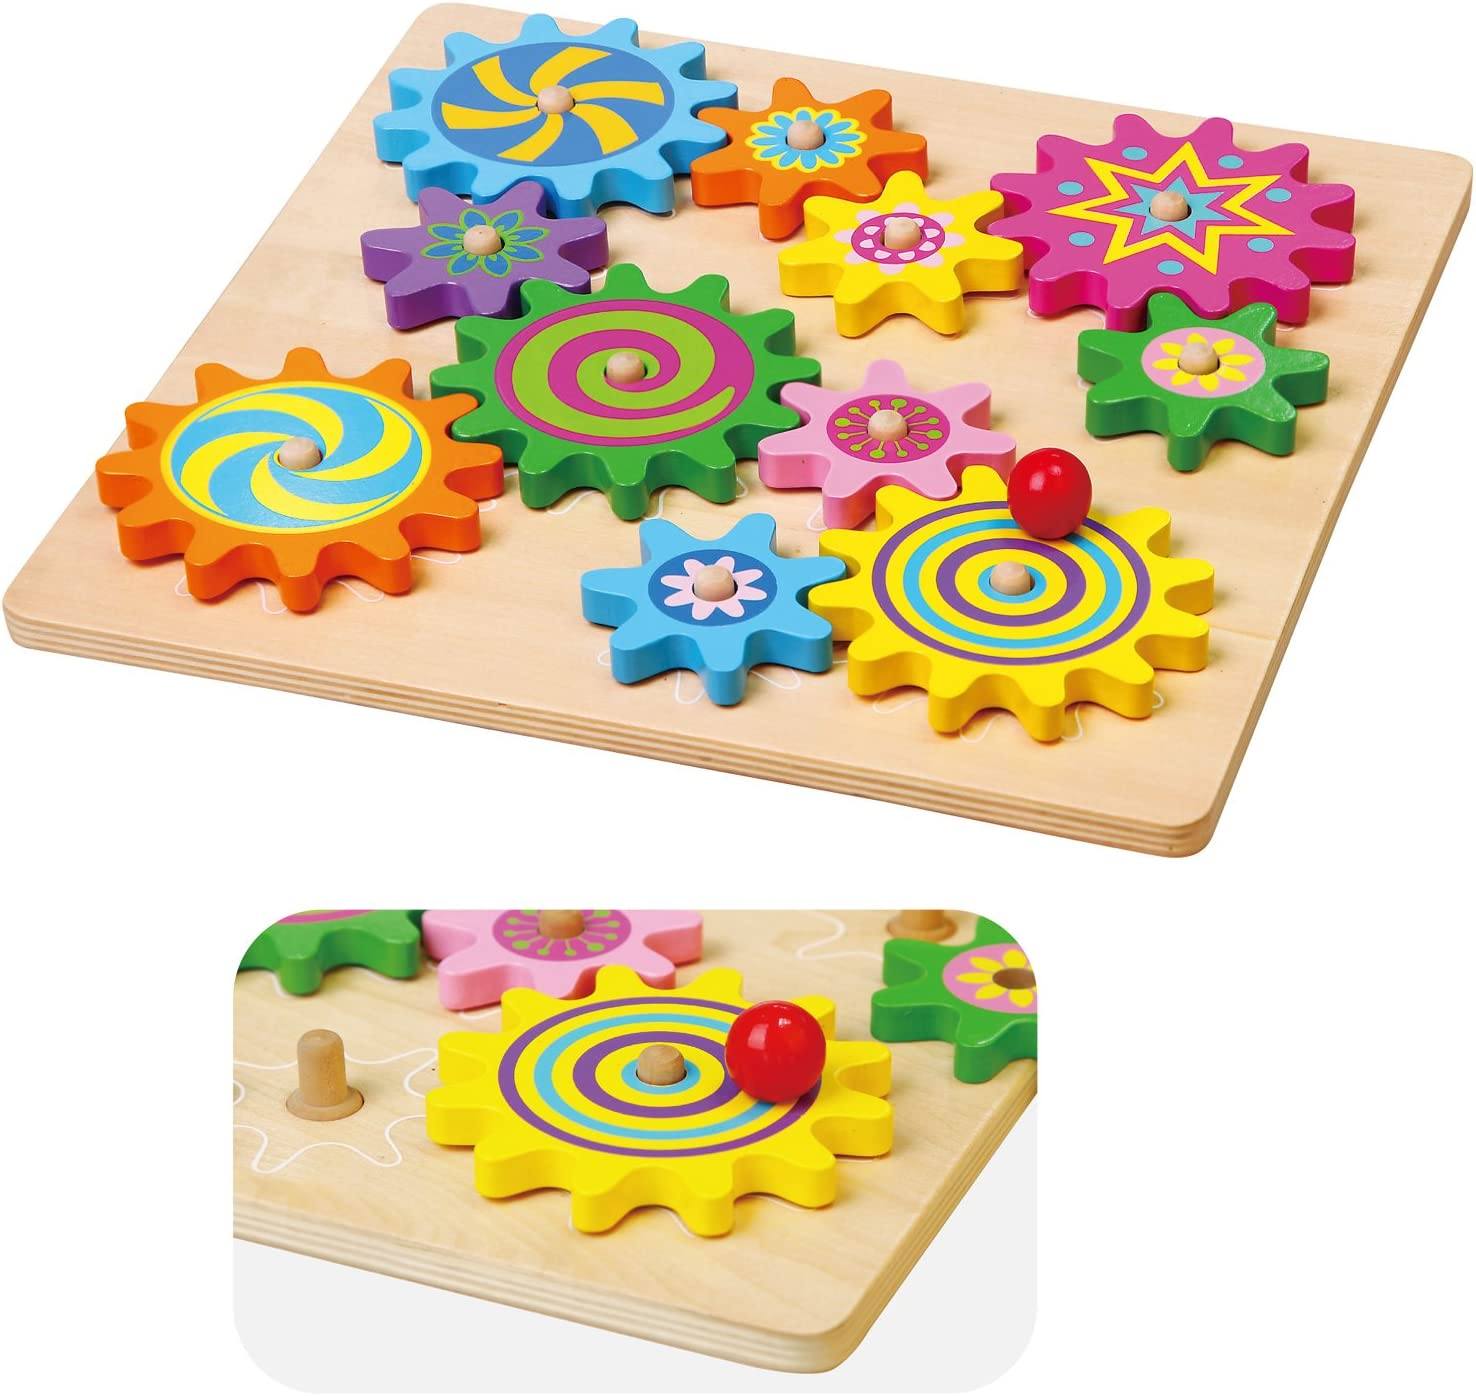 VIGA Wooden Spinning Gears & Cogs Childrens Toddler Activity Play Toy